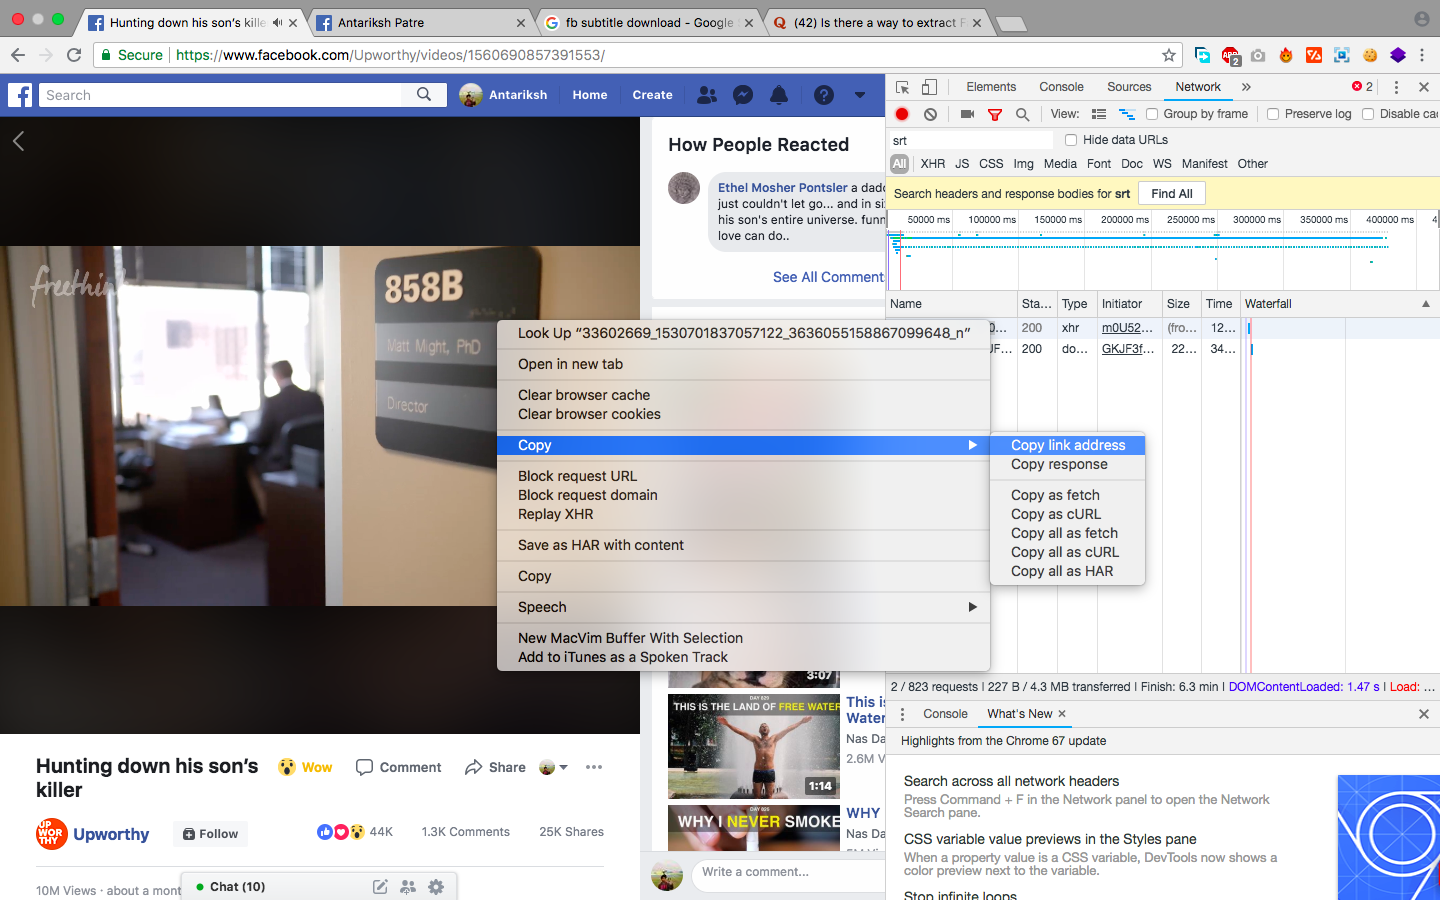 Is there a way to extract Facebook subtitles from a Video